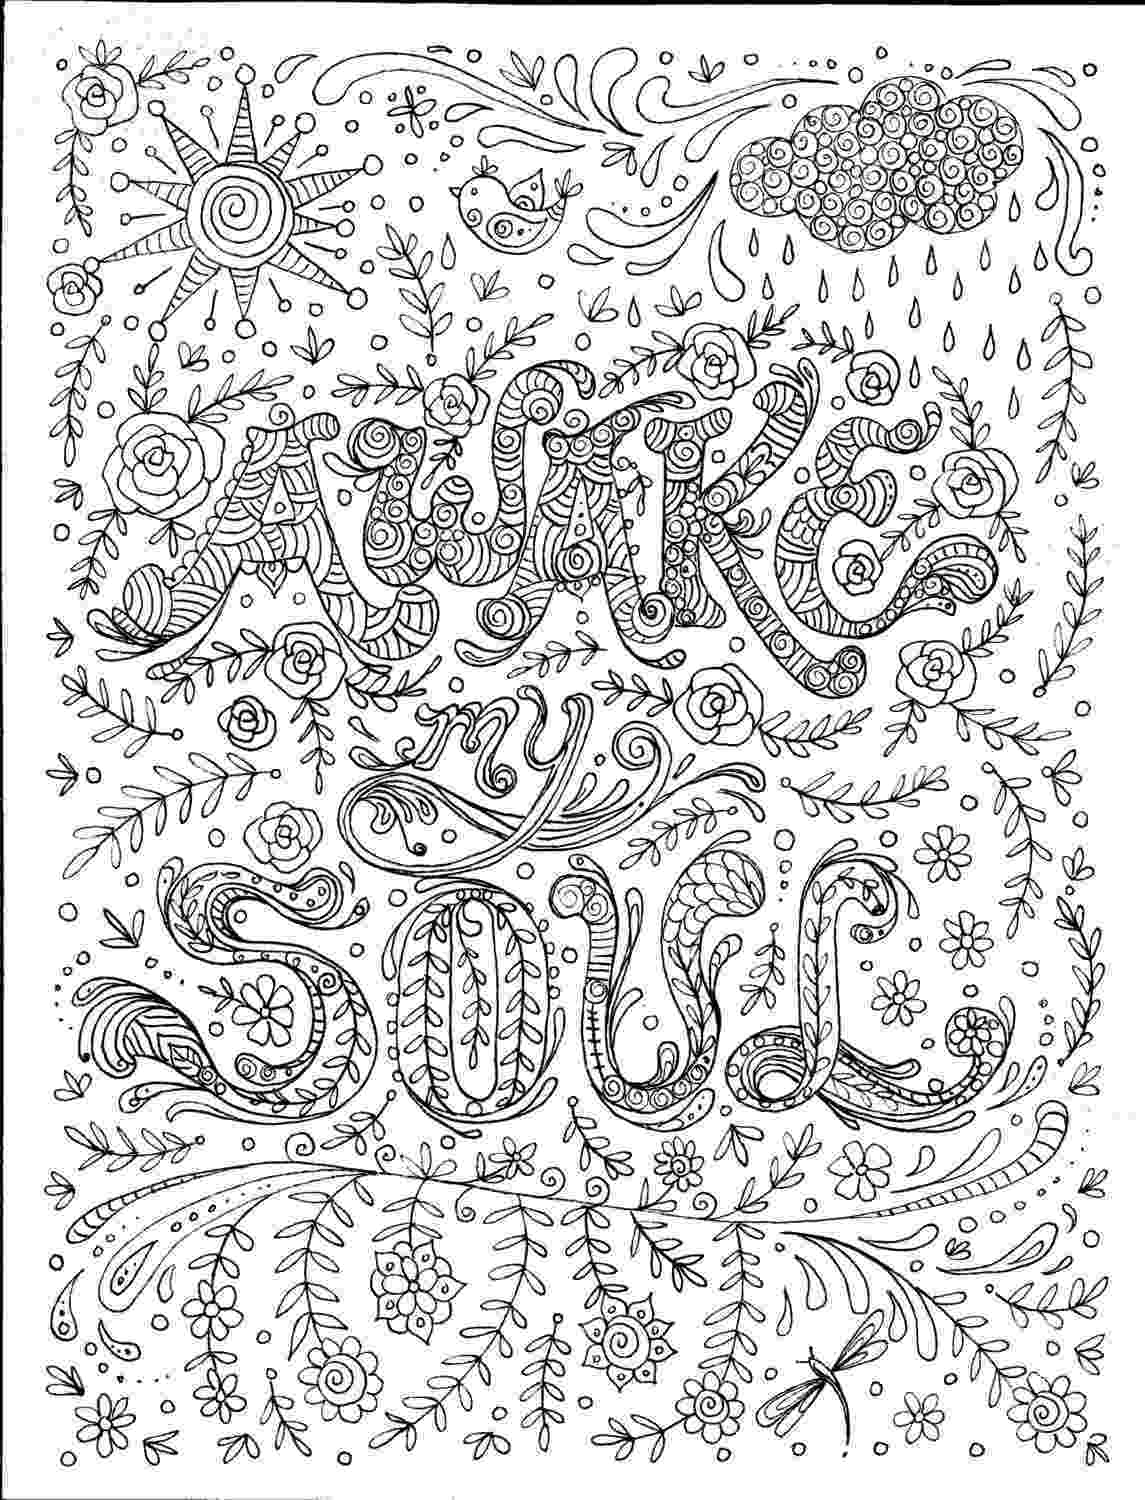 christian bible coloring pages top 10 free printable bible verse coloring pages online coloring bible pages christian